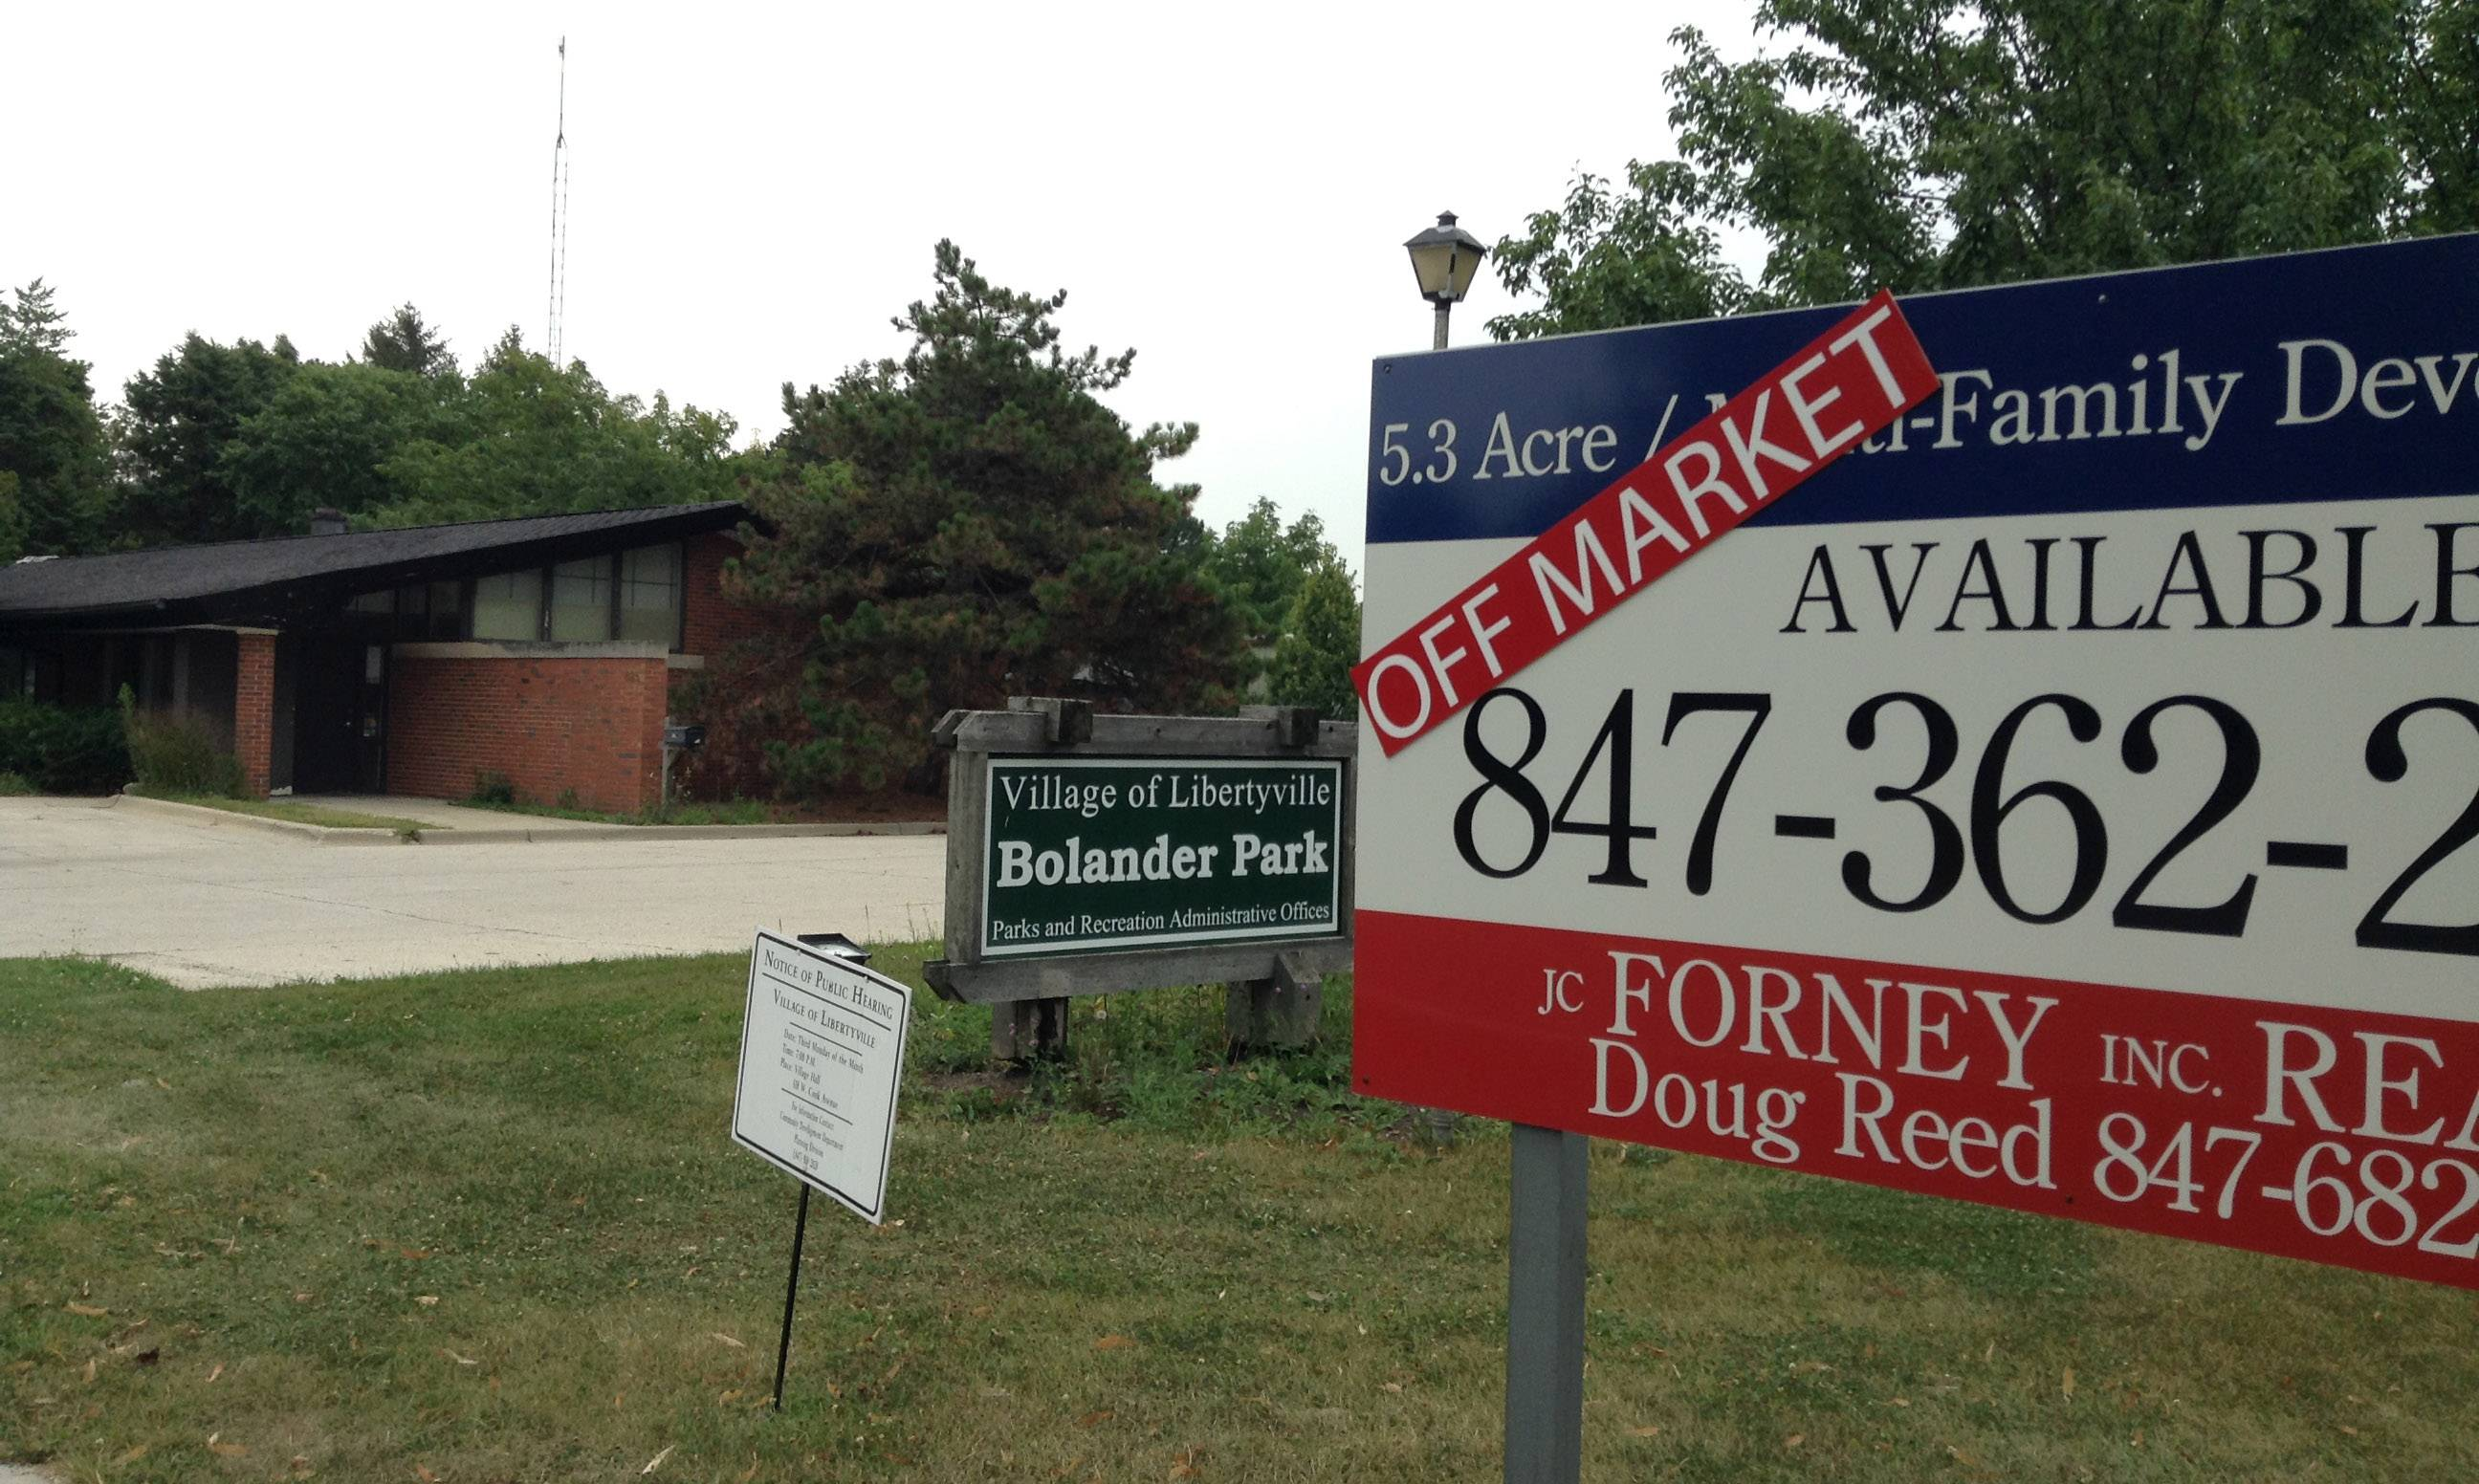 Sale of Libertyville park for townhouse development delayed again